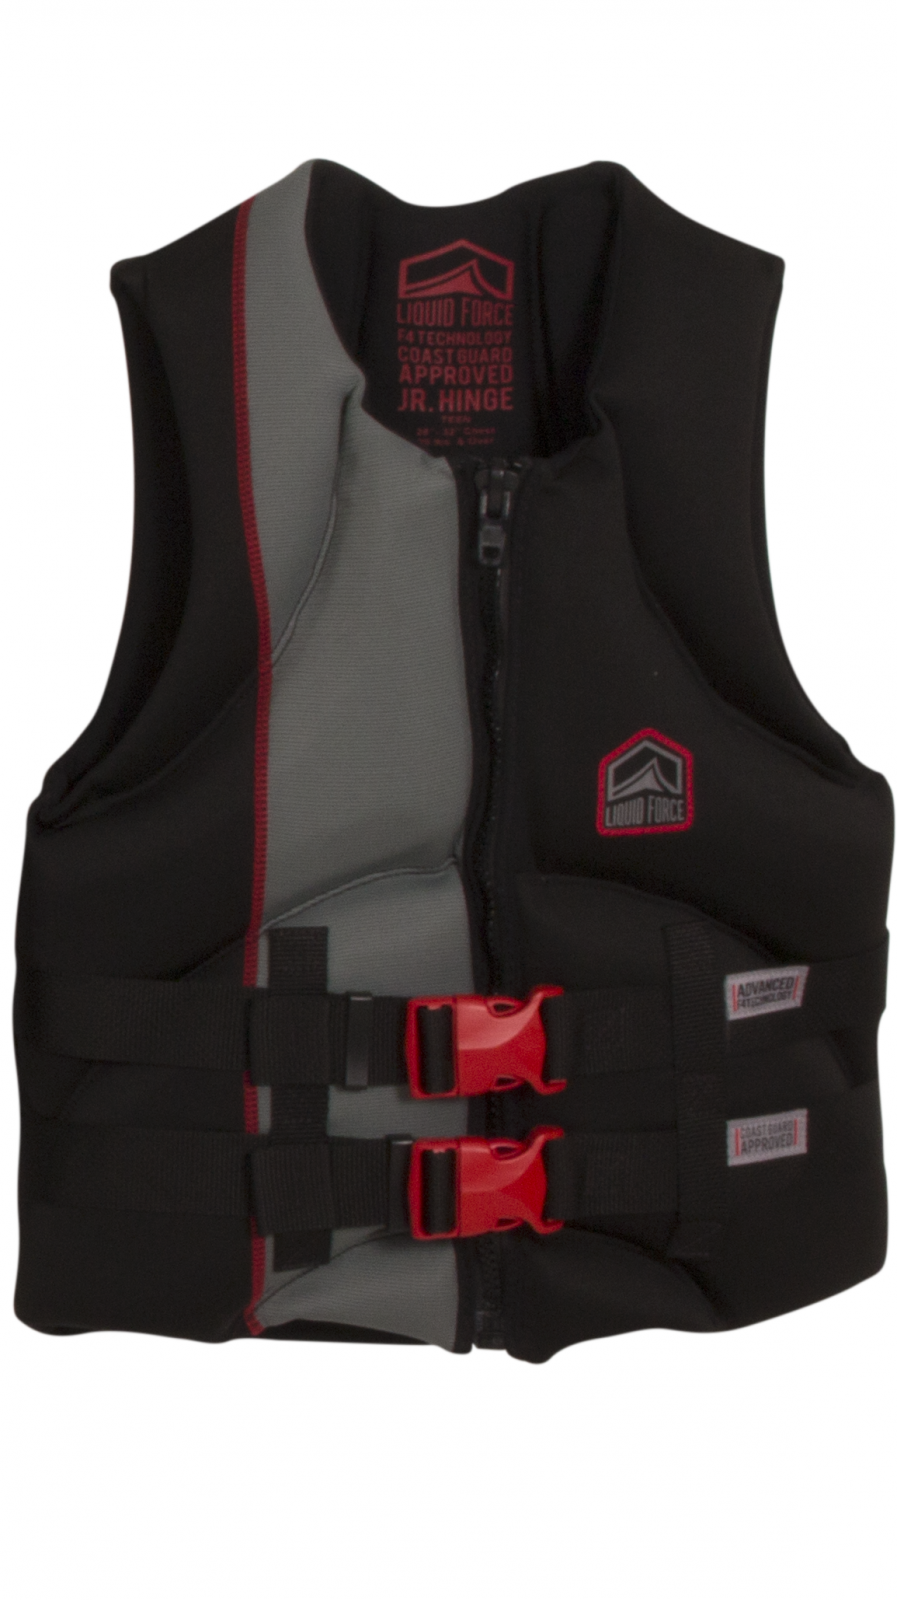 LF JUNIOR HINGE USCGA TEEN VEST